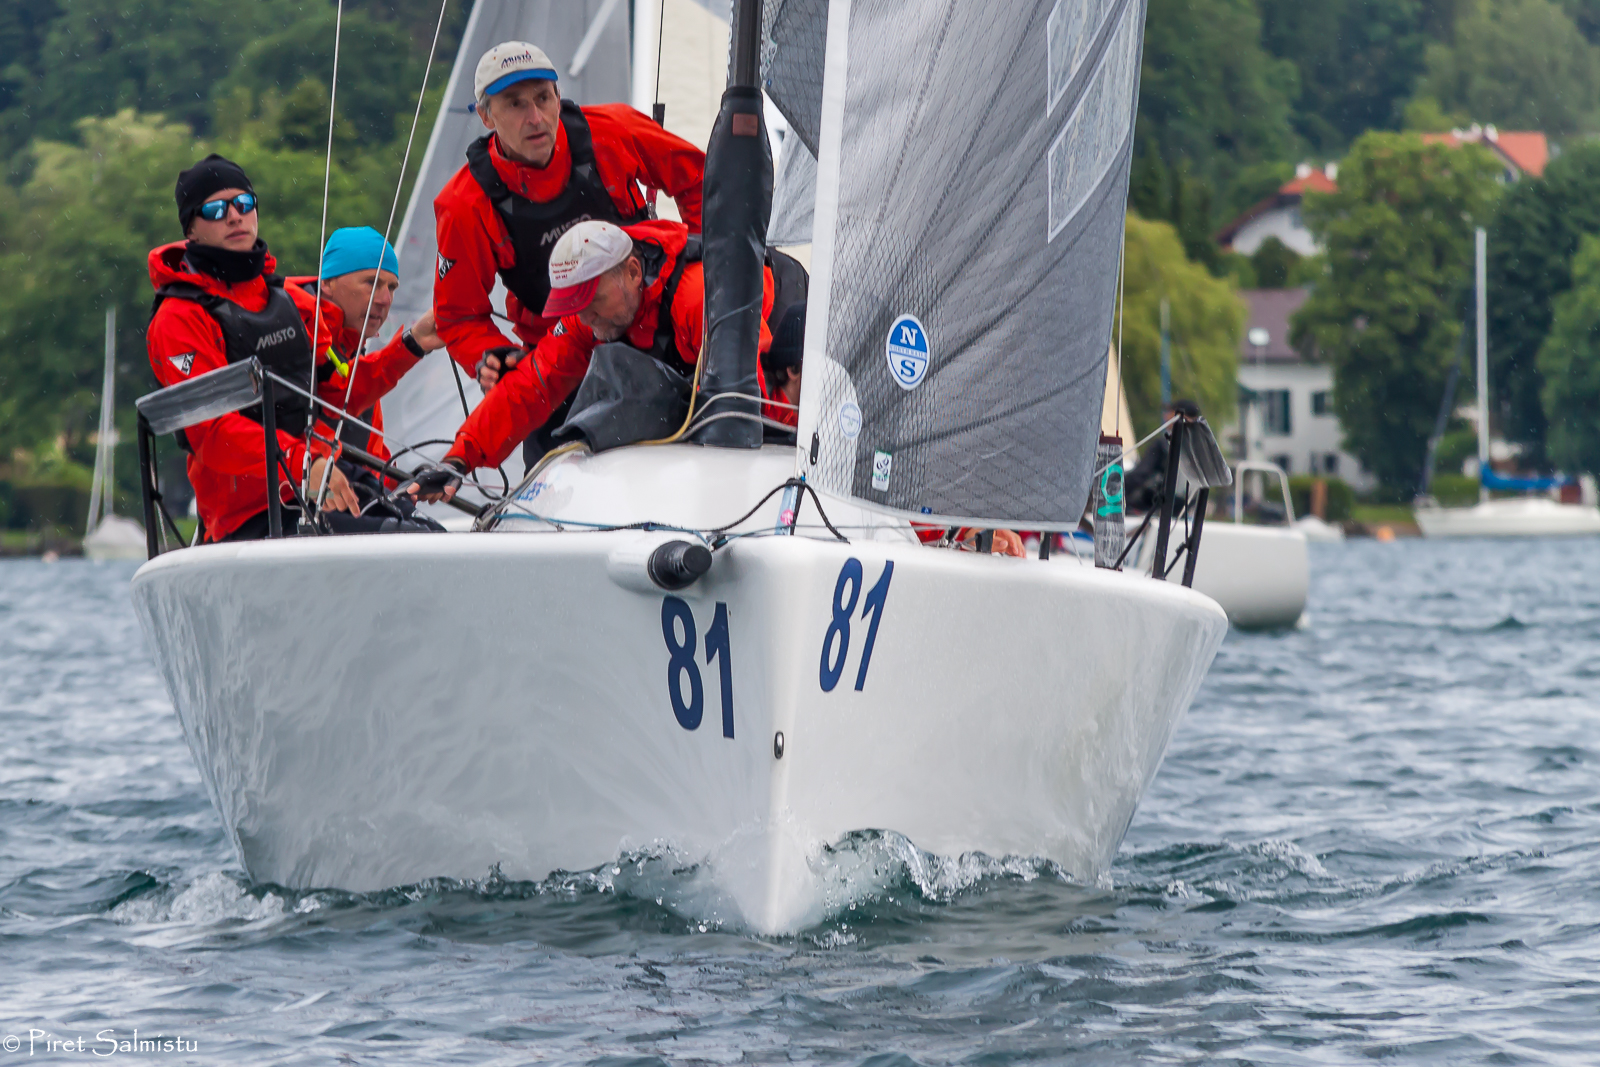 Kicker Schäfer/Eddy Eich's team Musto Racing GER803 - photo Piret Salmistu